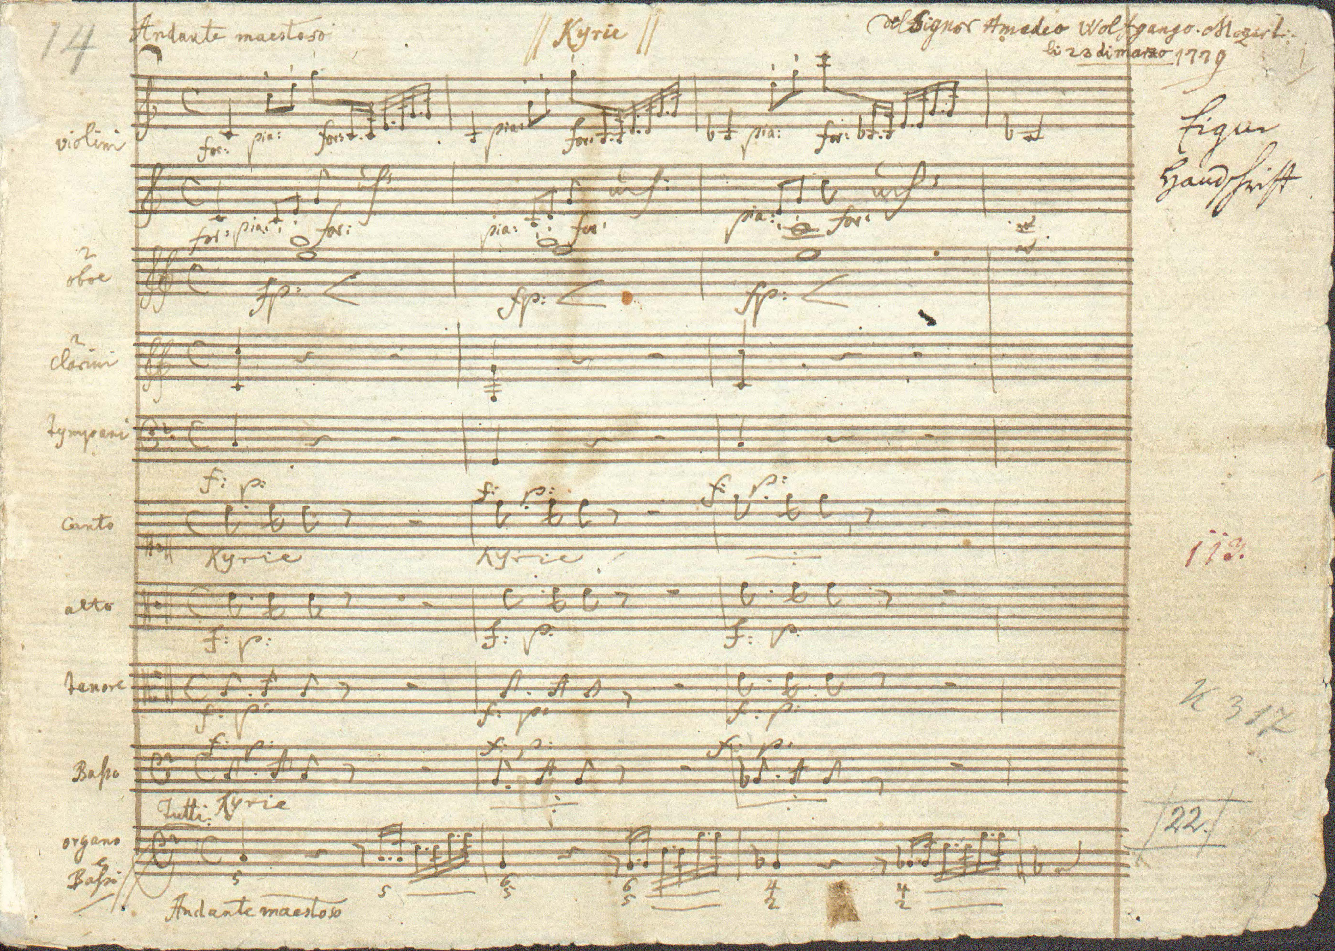 Autograph manuscript of the opening page